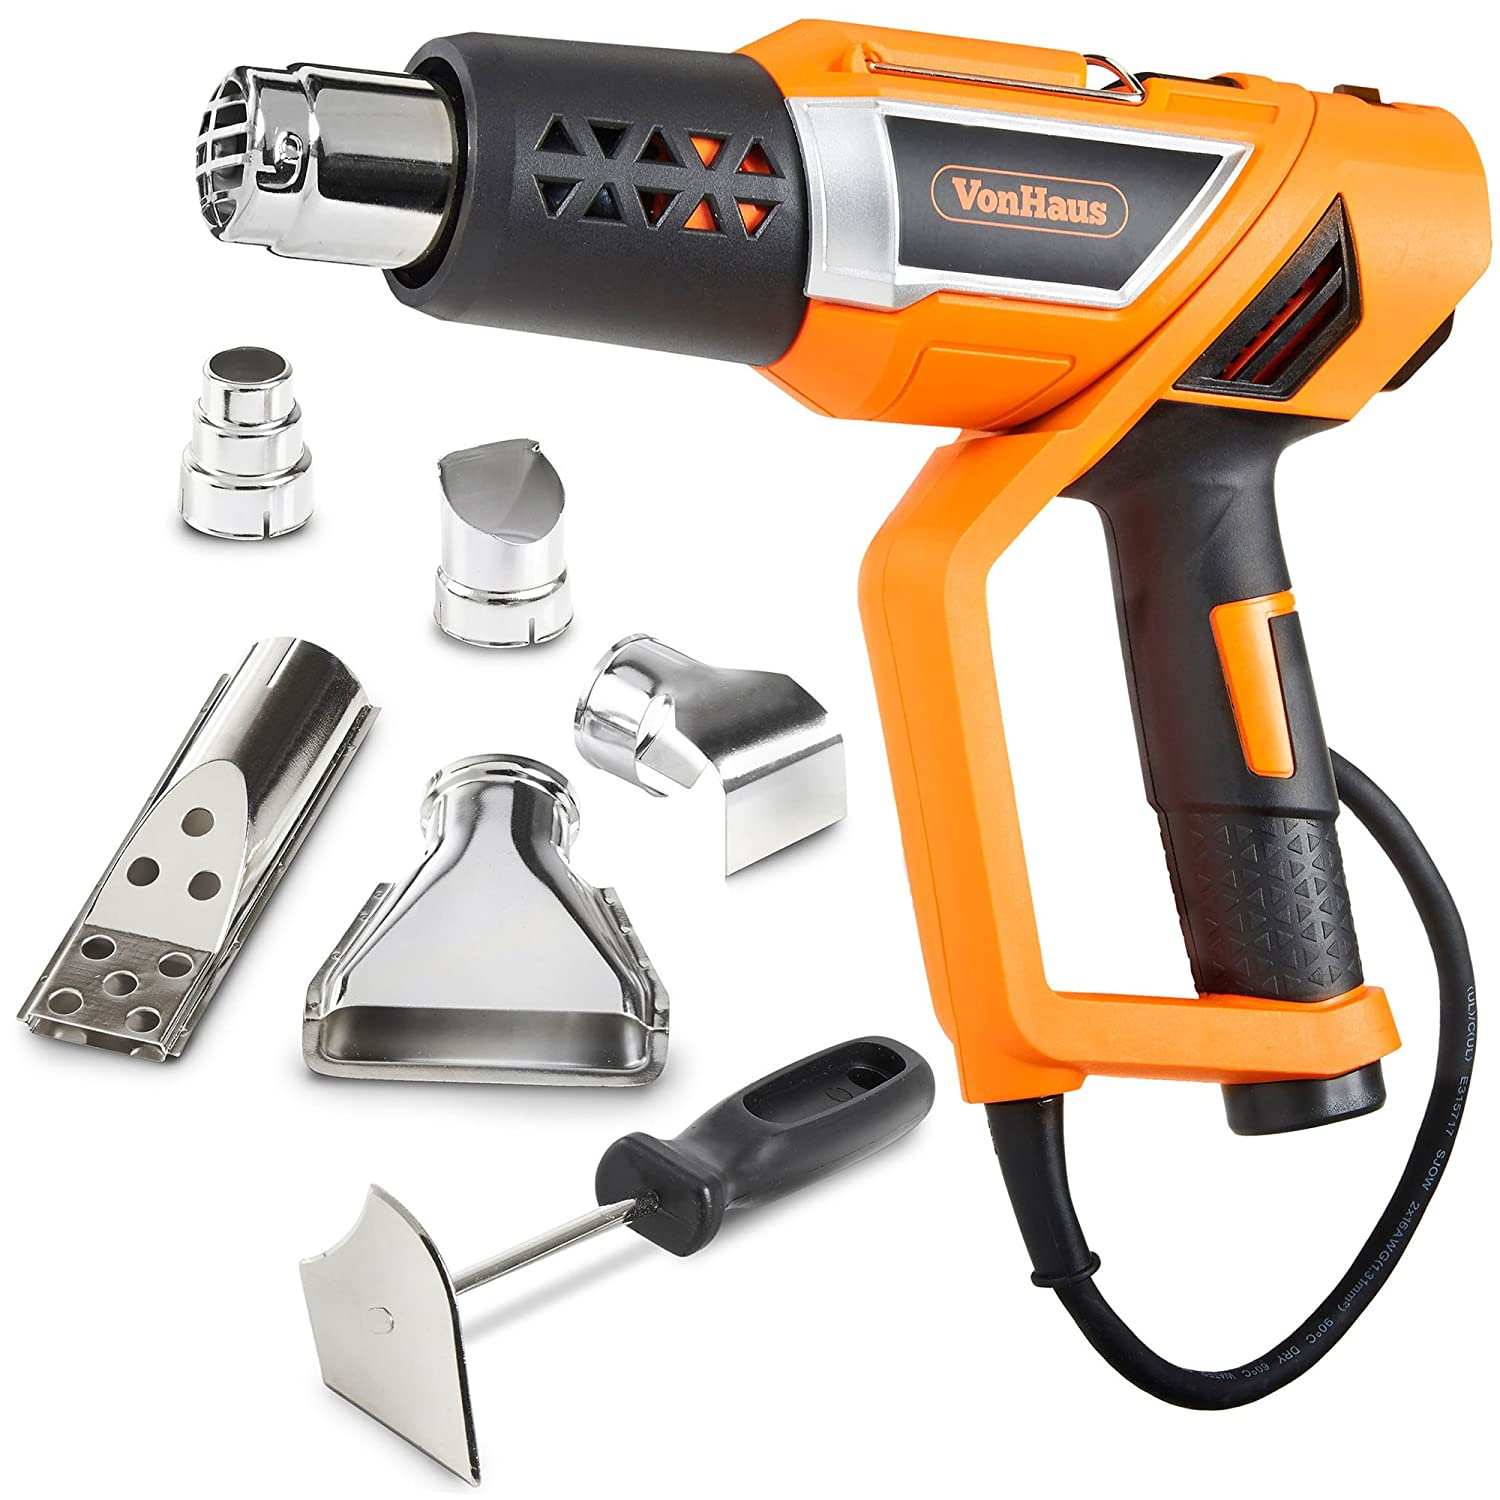 VonHaus Professional Electric Heat Gun Set with Twistable Nozzle 3 Temperature Settings Adjustable Handle and 5 Accessories for Heating BBQ Grills PVC Shrink Stripping Paint Soldering Pipes